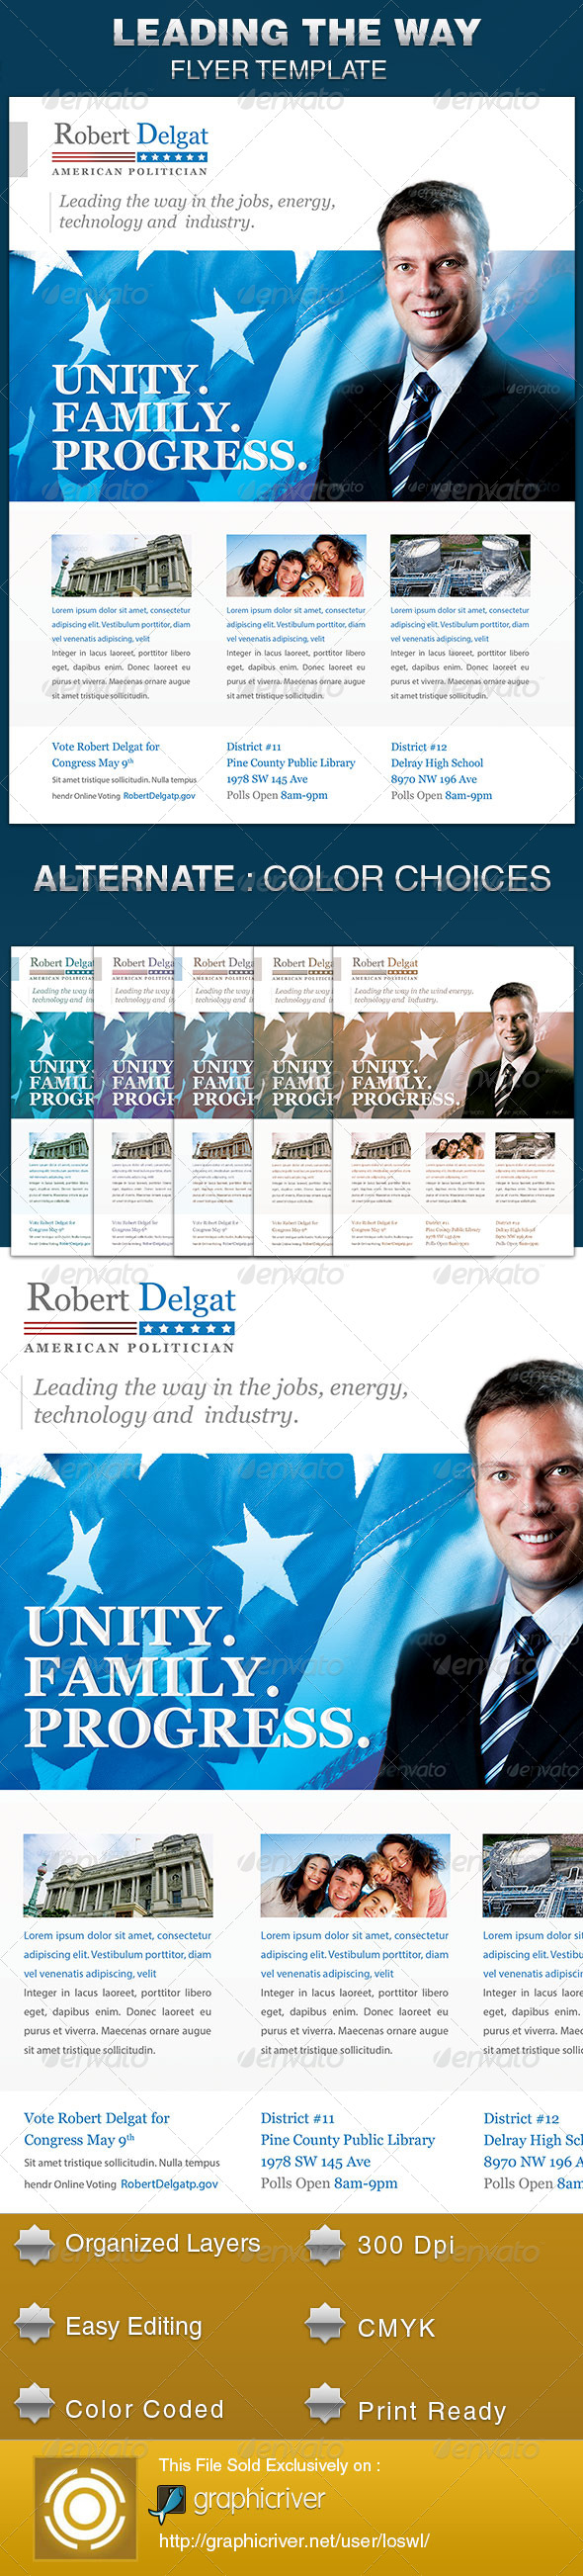 GraphicRiver Leading the Way Political Flyer Template 5515849